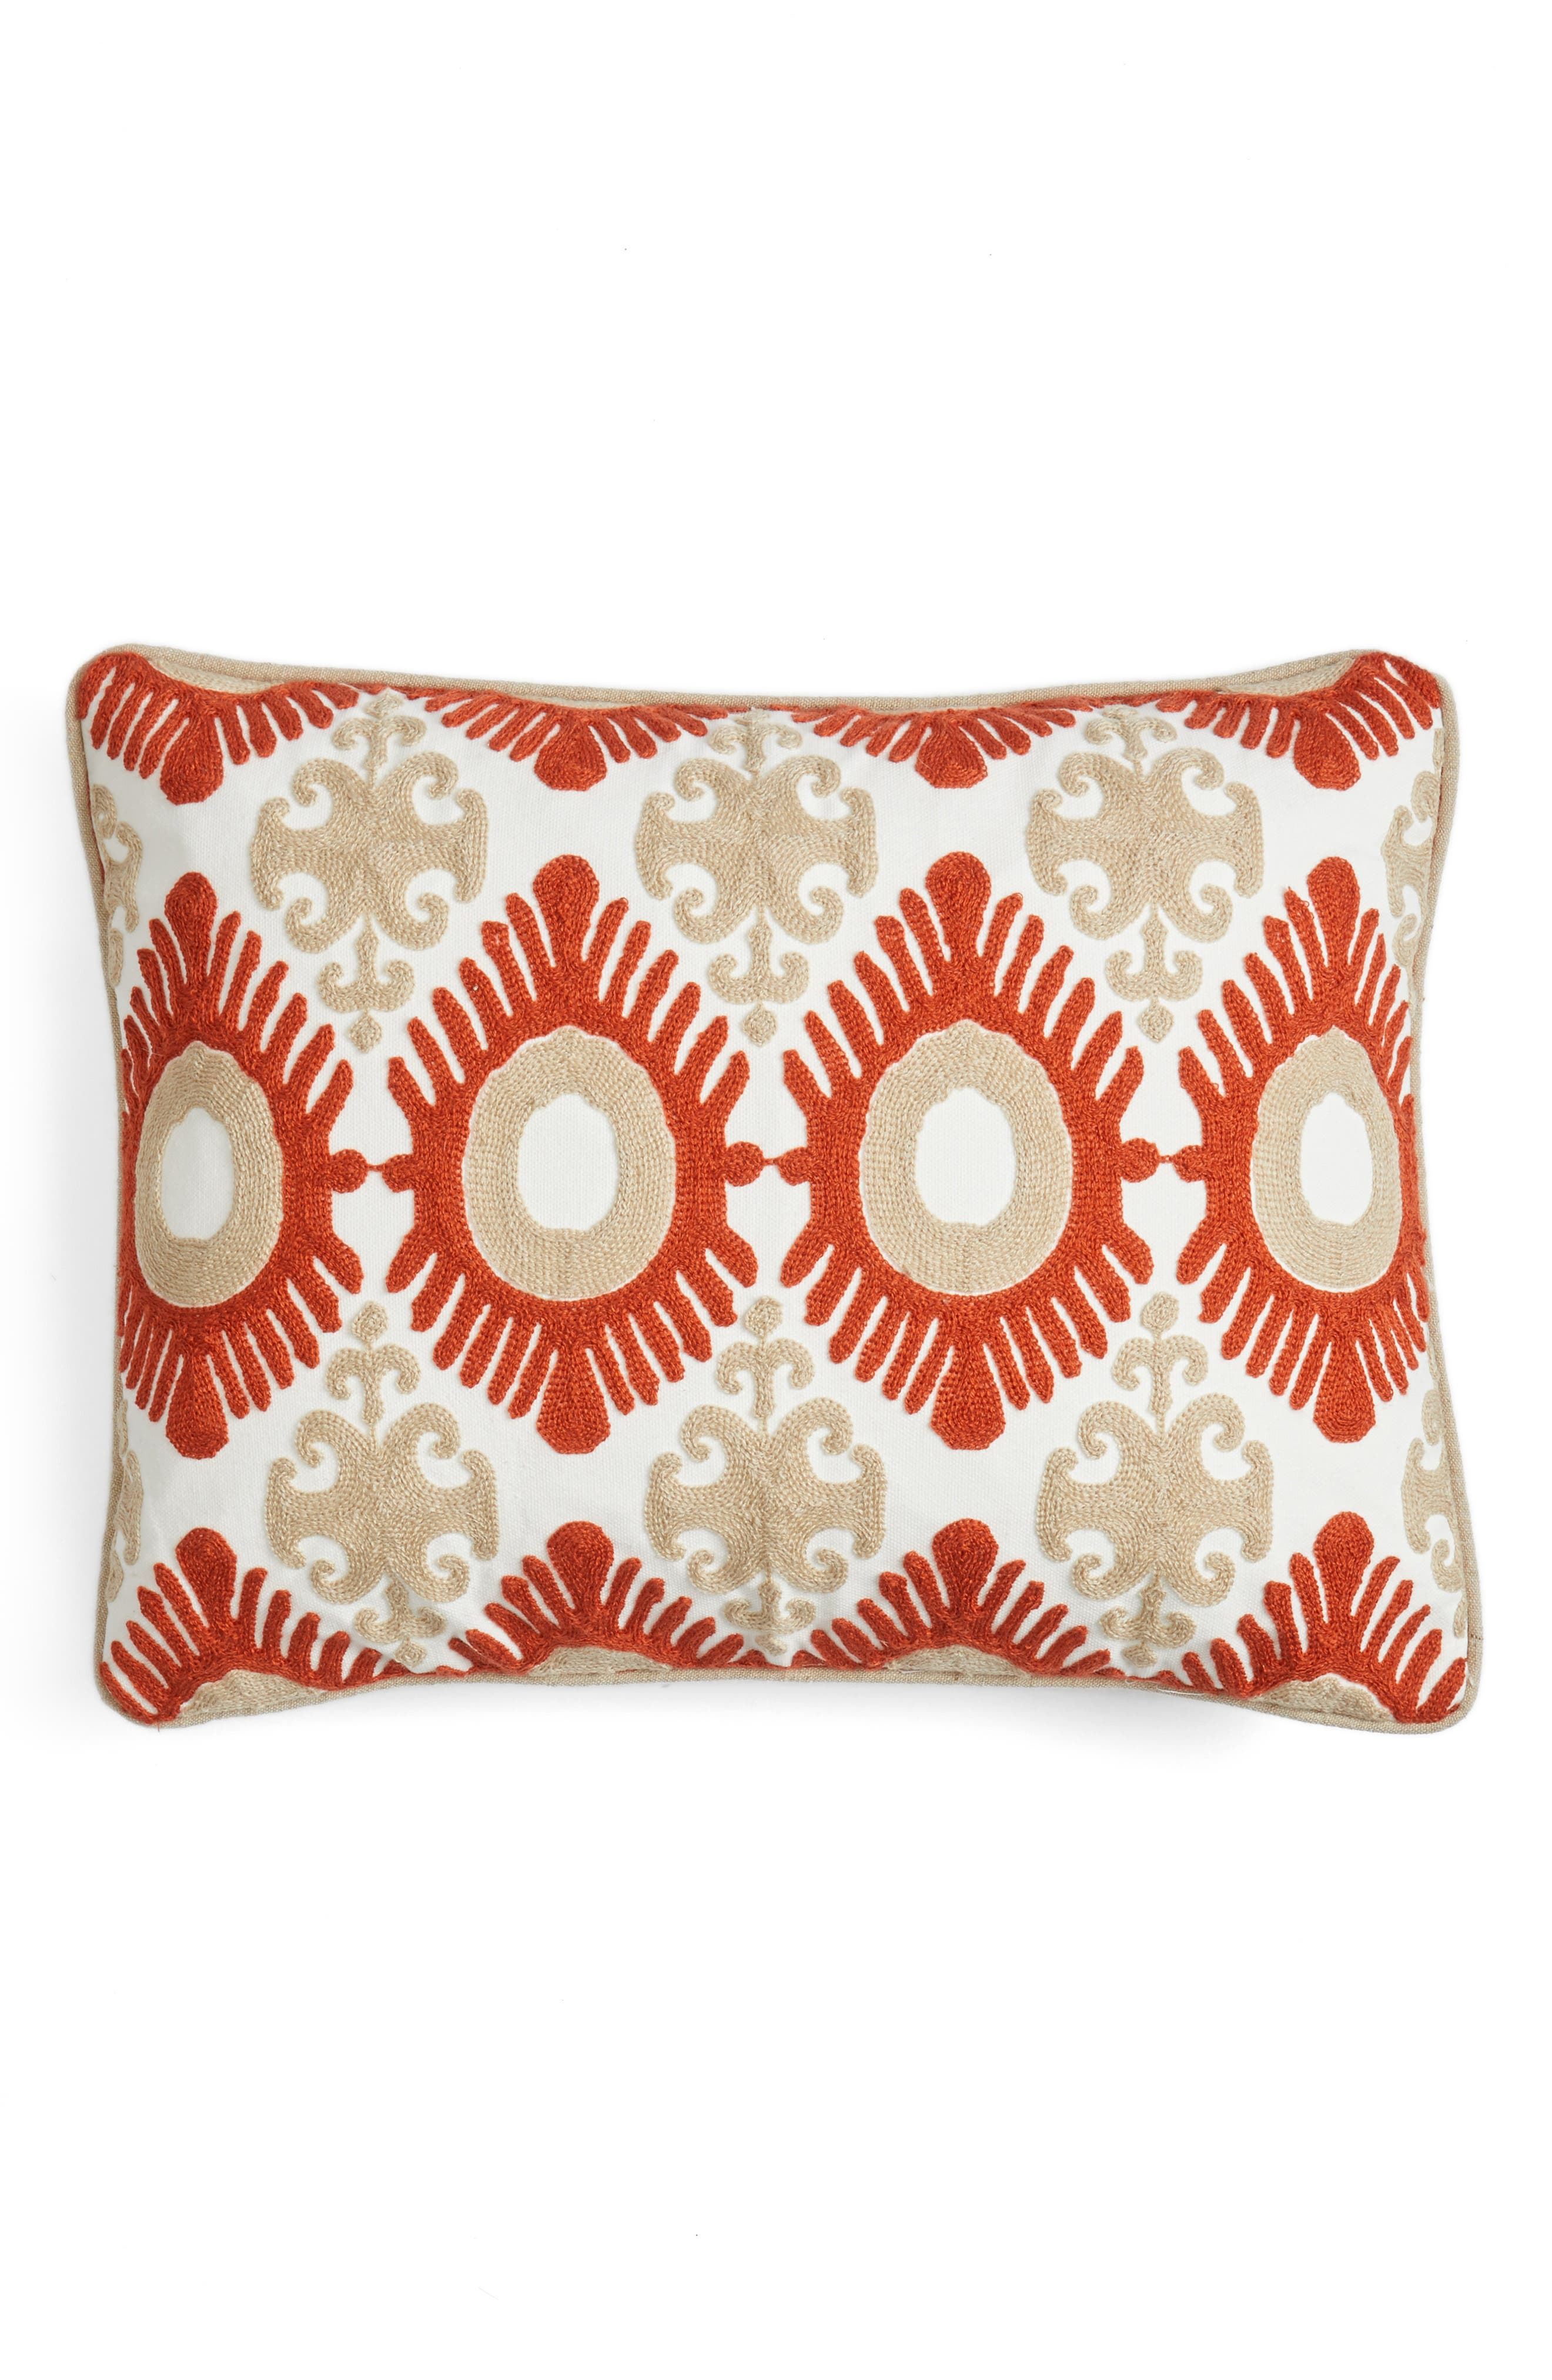 Fira Crewel Stitch Accent Pillow,                         Main,                         color, Red